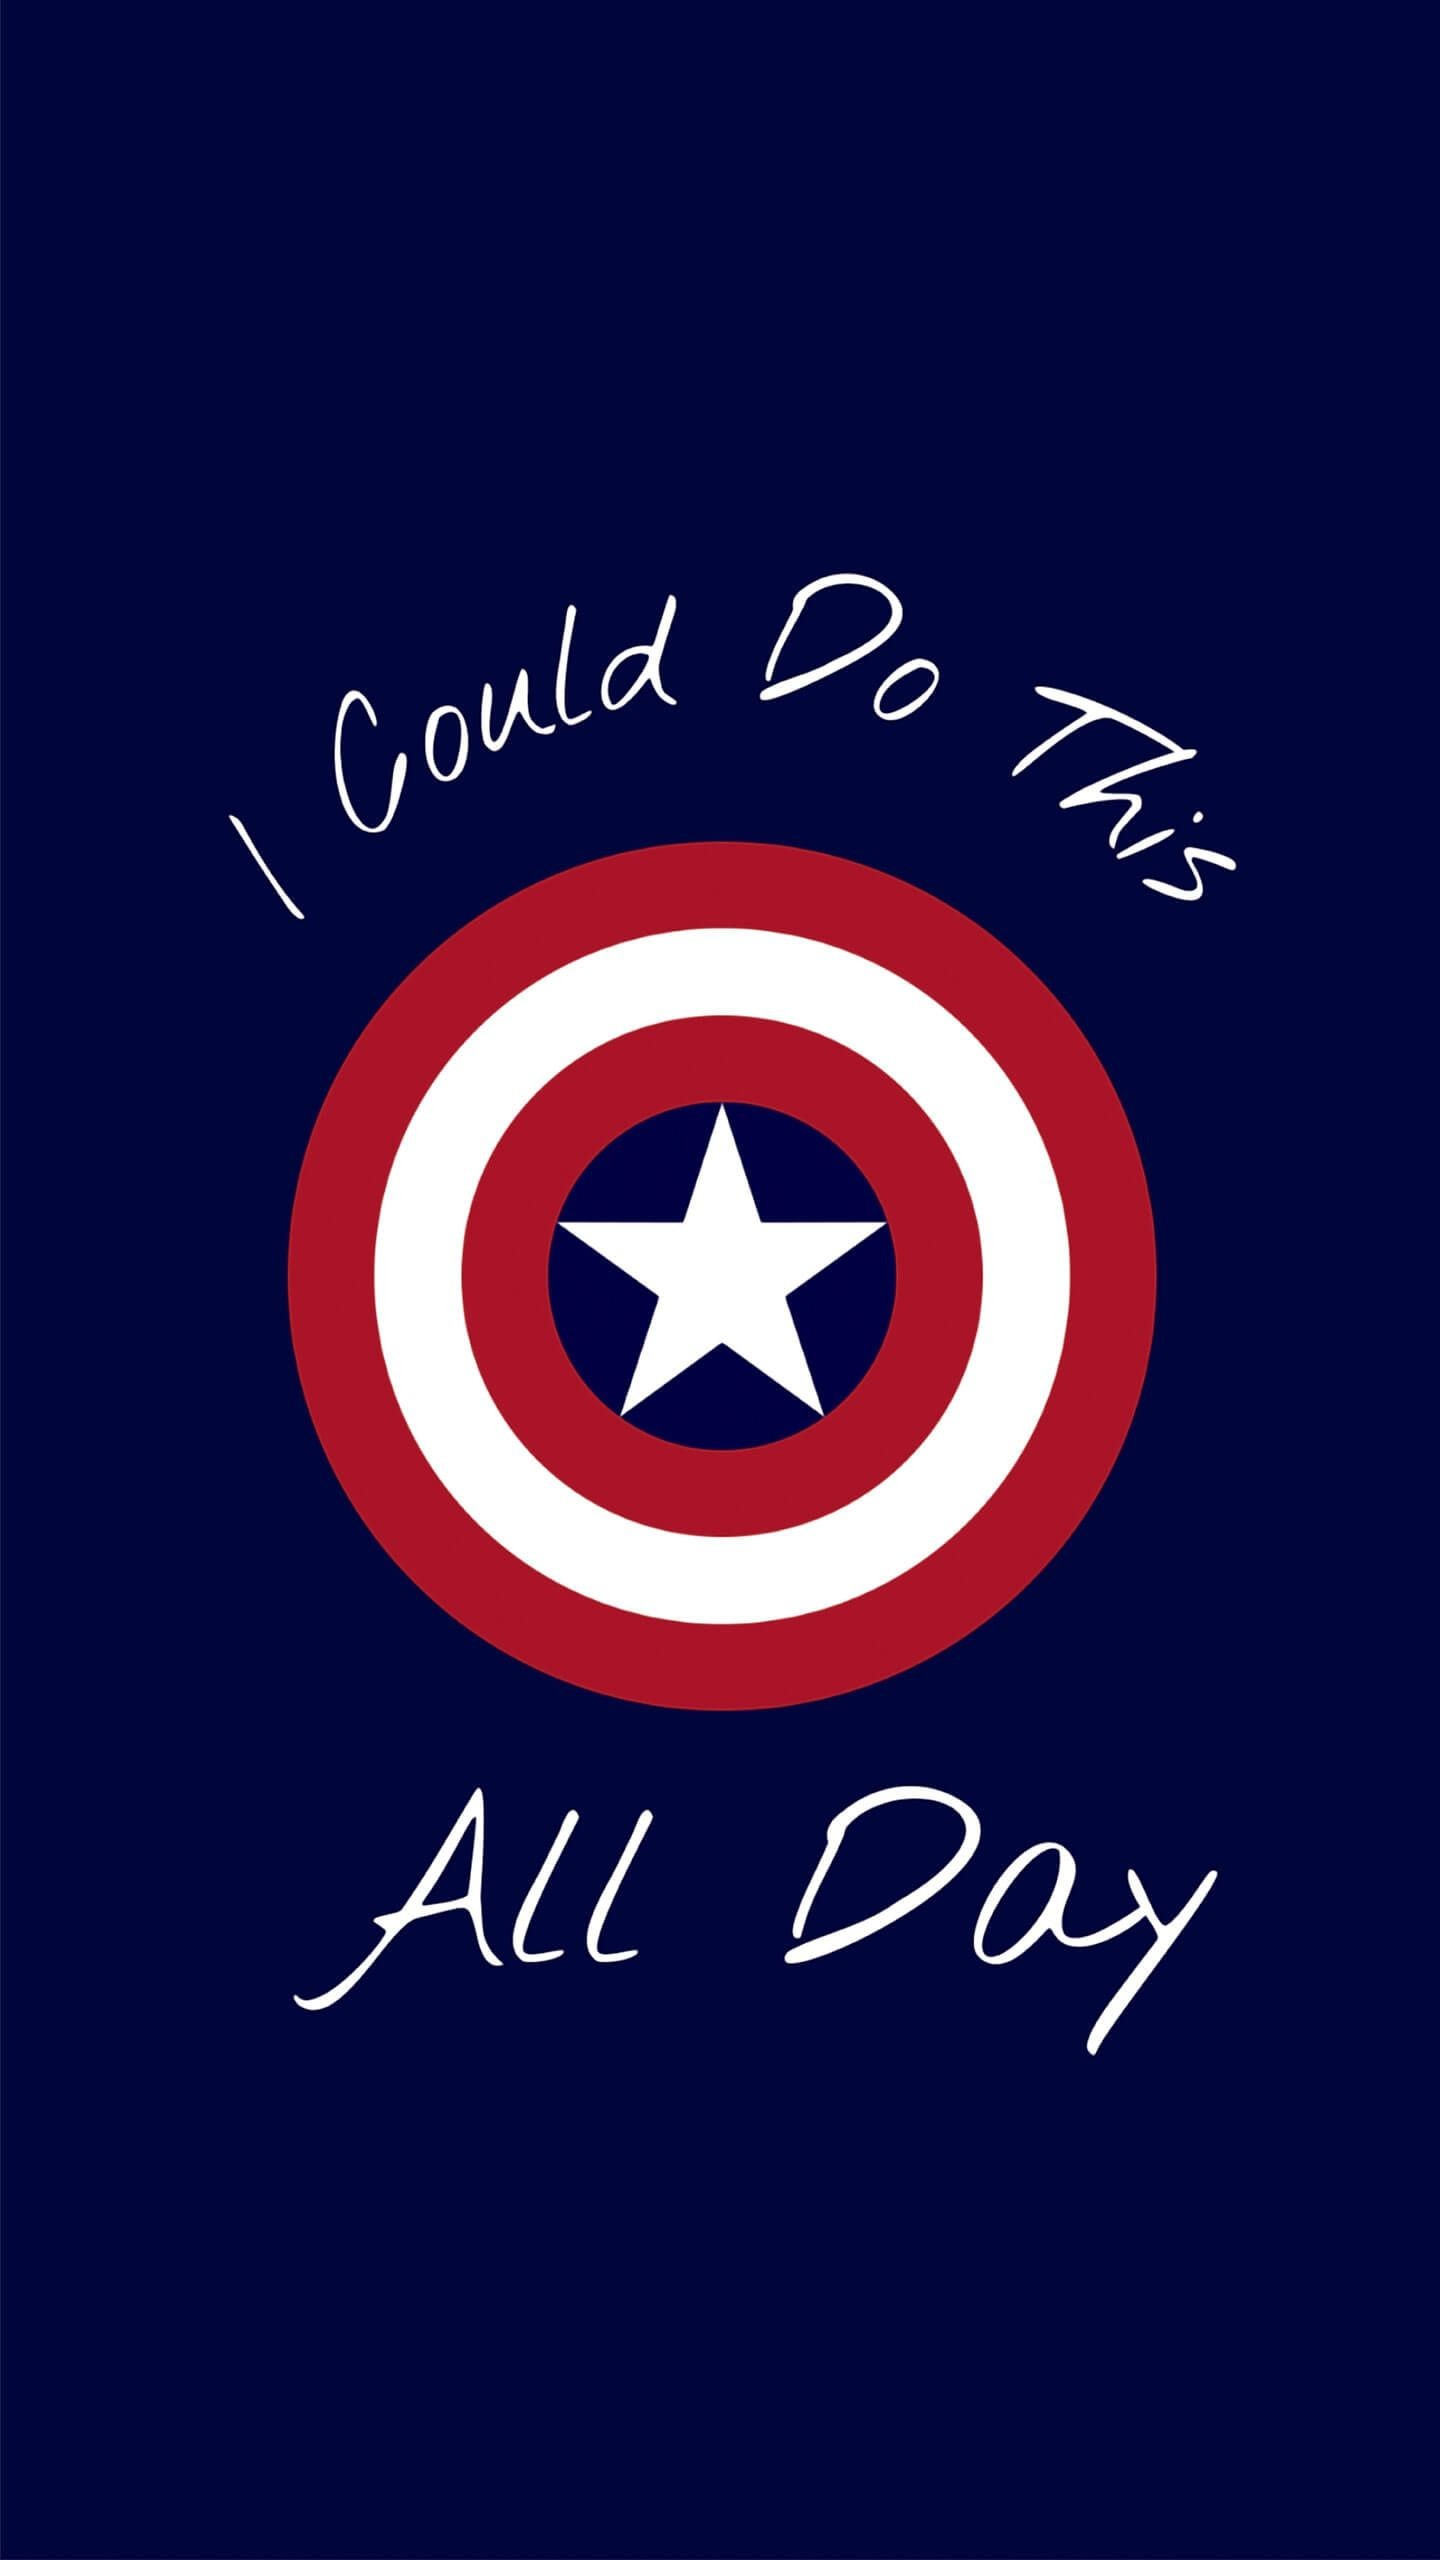 Captain America Best Quote Iphone Wallpaper   Data - Quotes I Can Do This All Day Captain America - HD Wallpaper